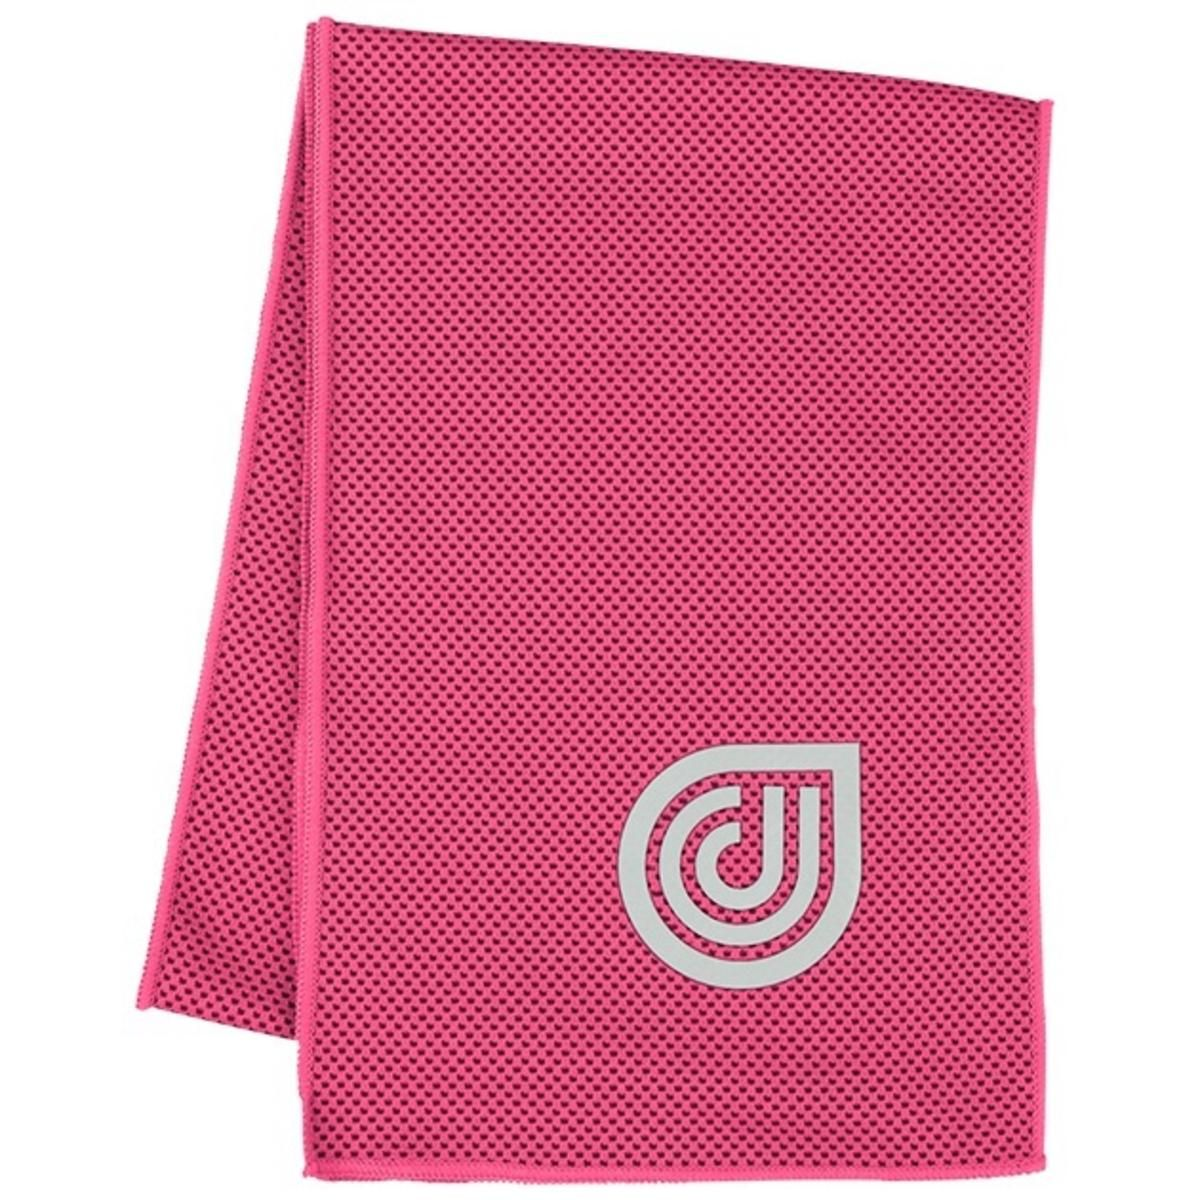 Cooling Sports Towel Review: Dr. Cool Chill Sport Cooling Towel